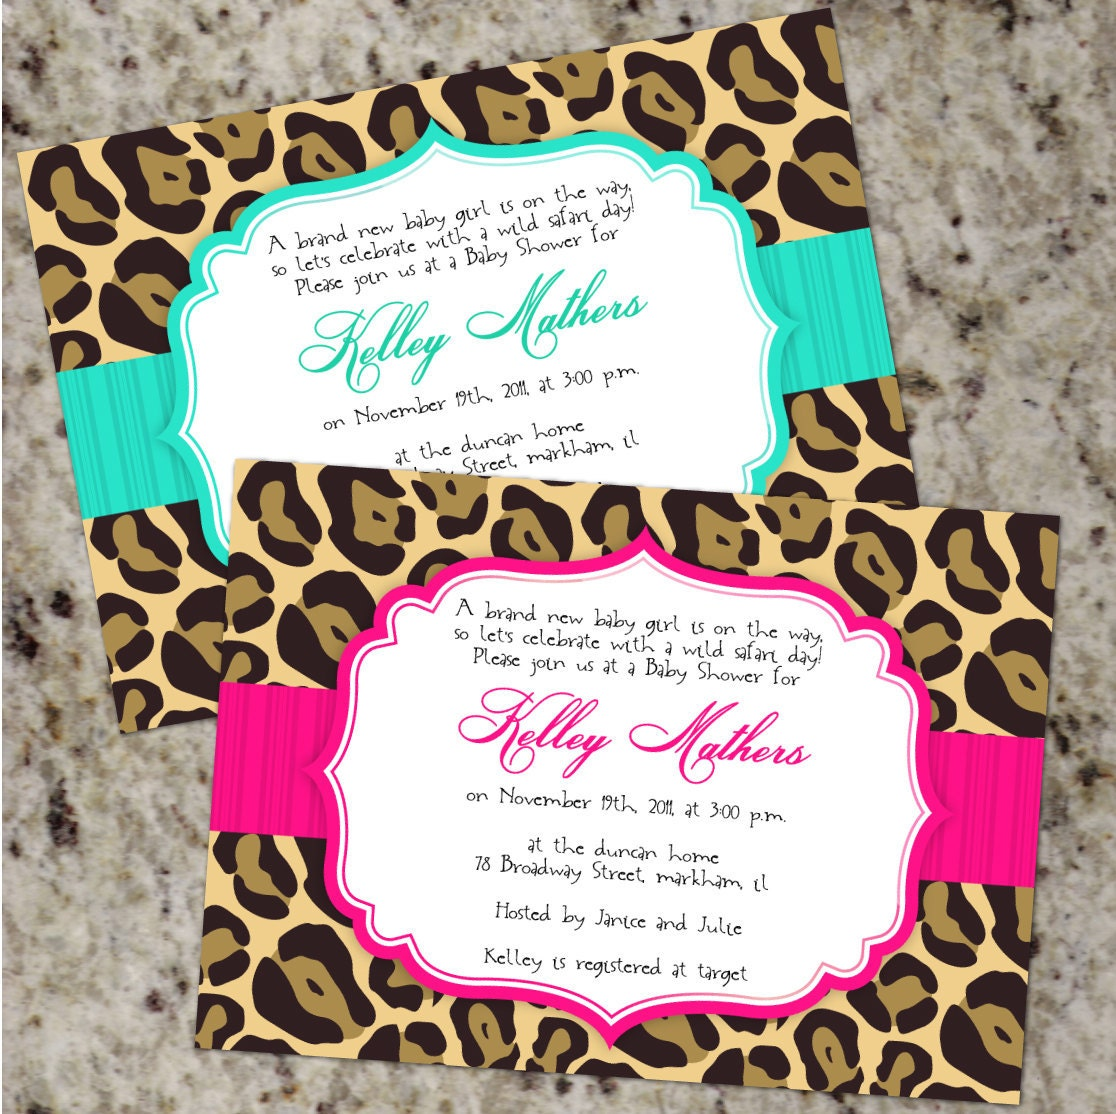 Cheetah Baby Shower Invitations is one of our best ideas you might choose for invitation design